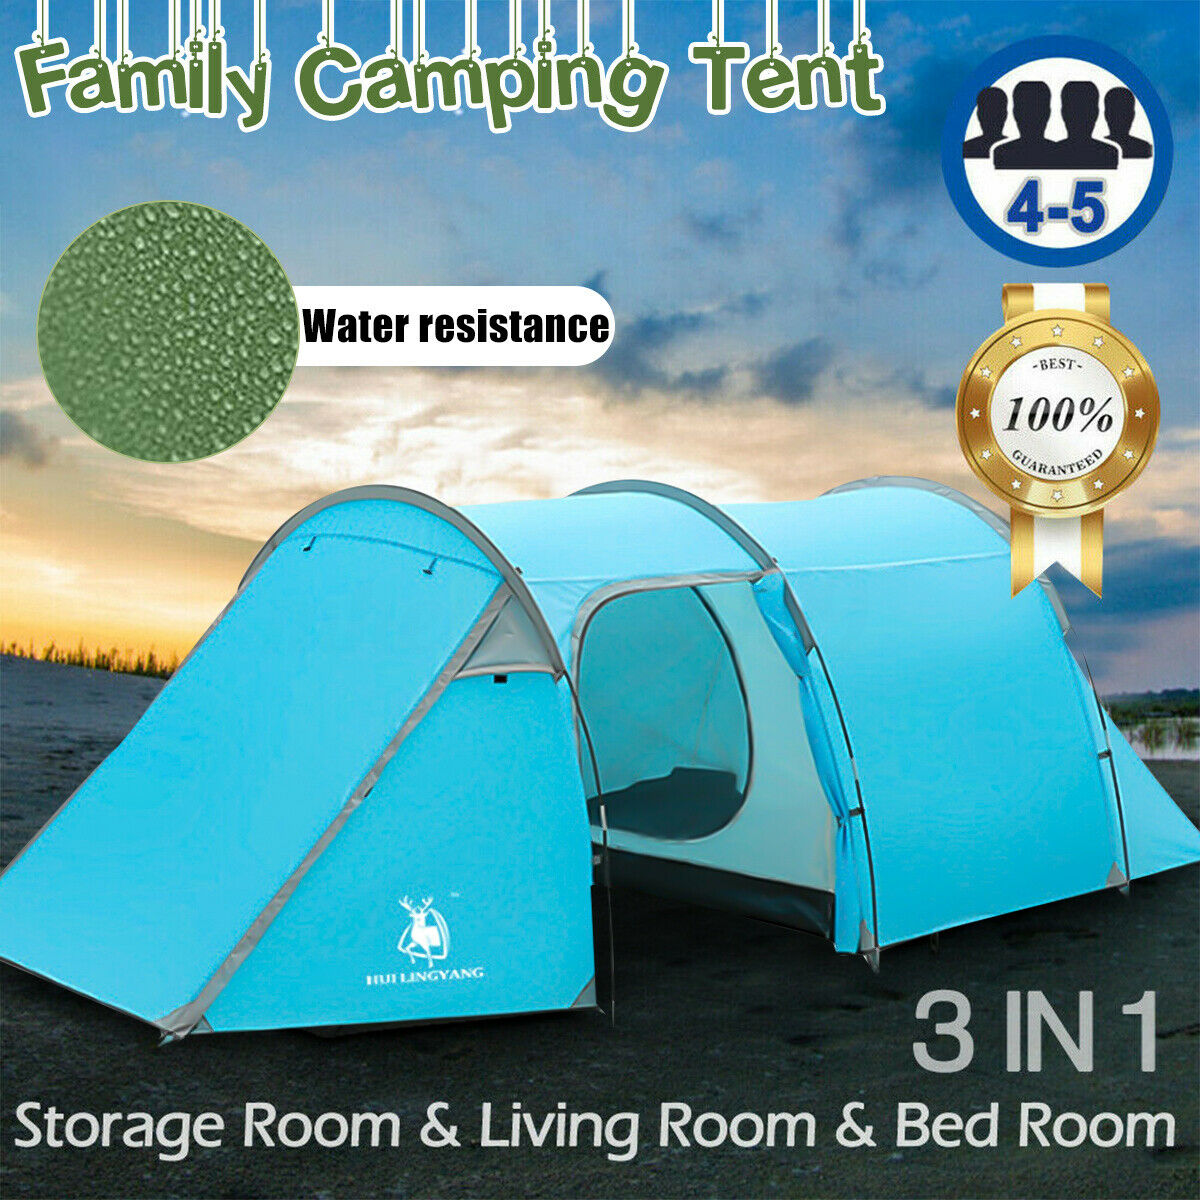 4-5 Person Family Camping  Tent Tunnel Dome Waterproof Outdoor Travel Hiking Tent  no minimum